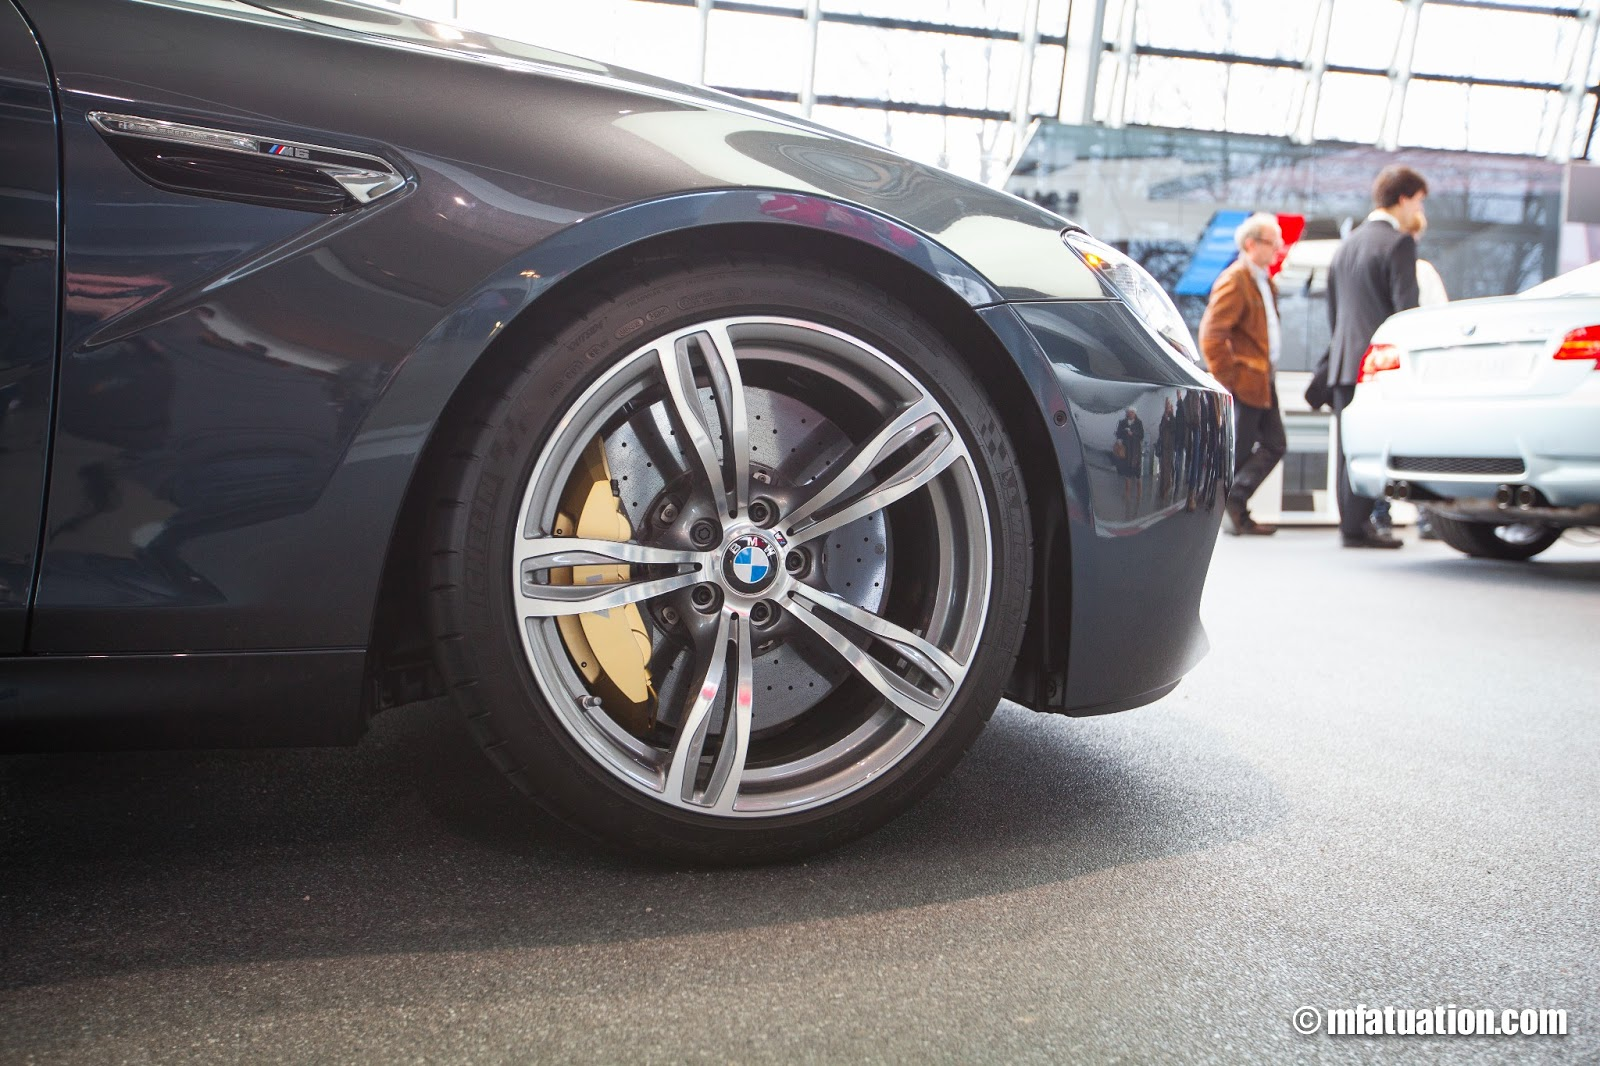 The F06 M6's massive carbon ceramic brakes.